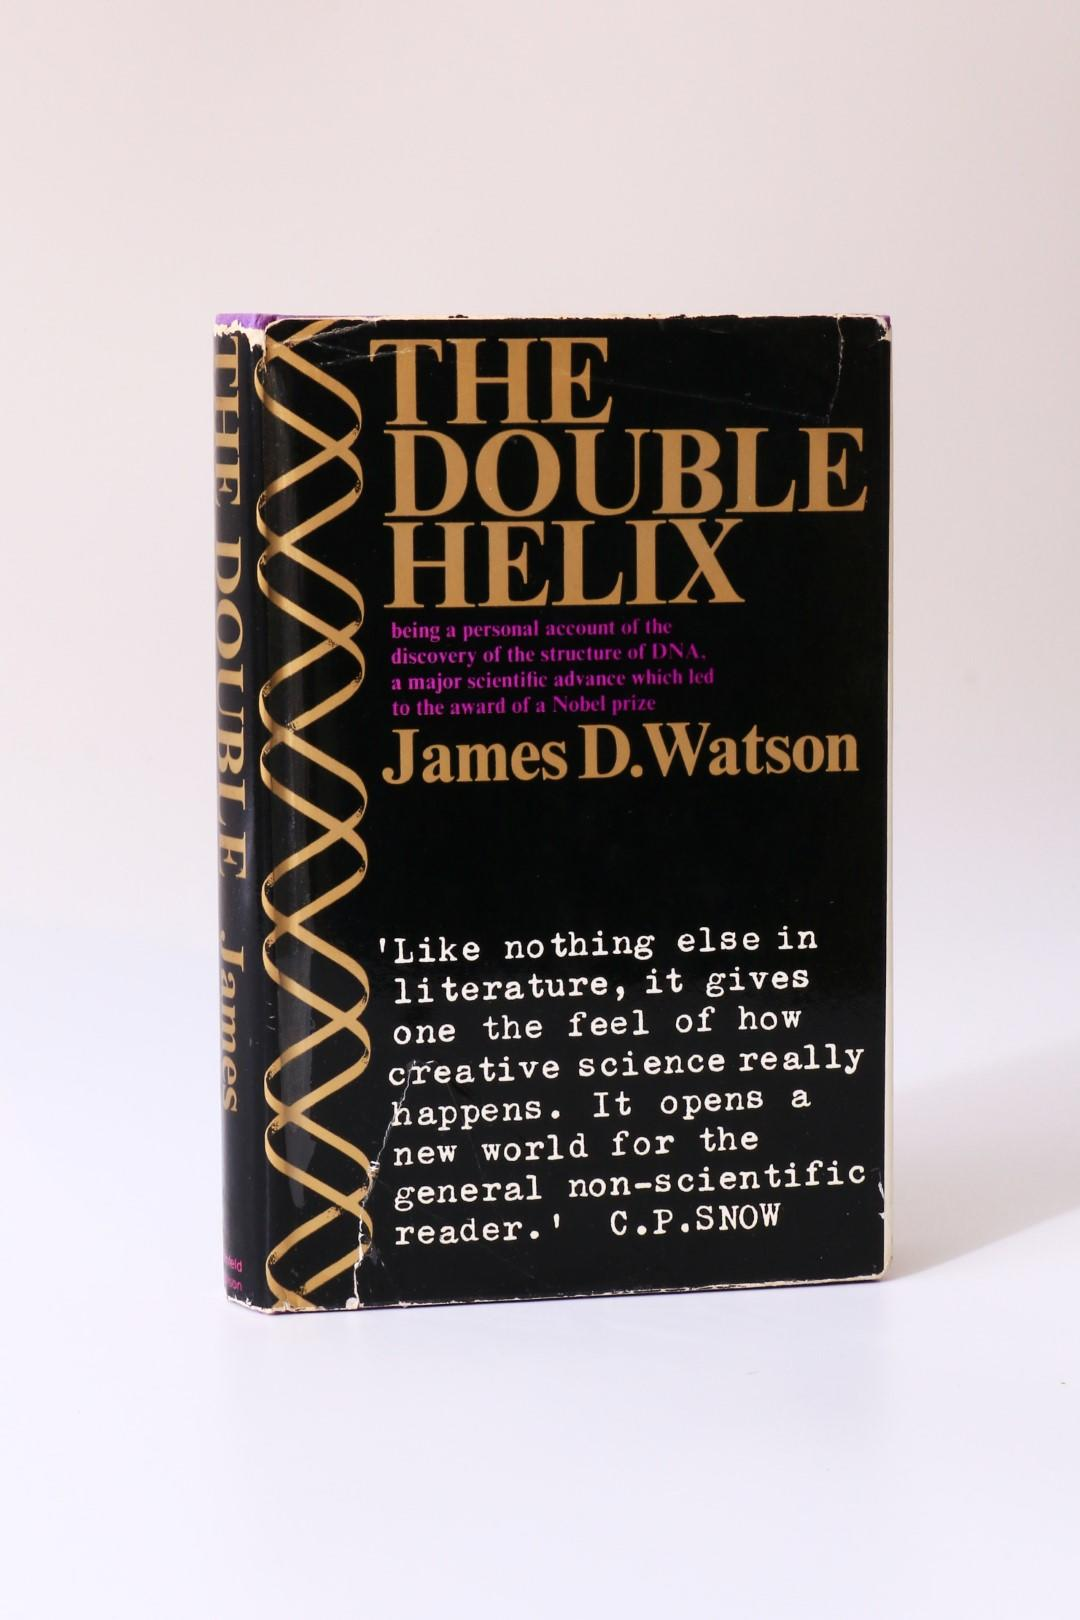 James D. Watson - The Double Helix - Weidenfeld & Nicolson, 1968, First Edition.